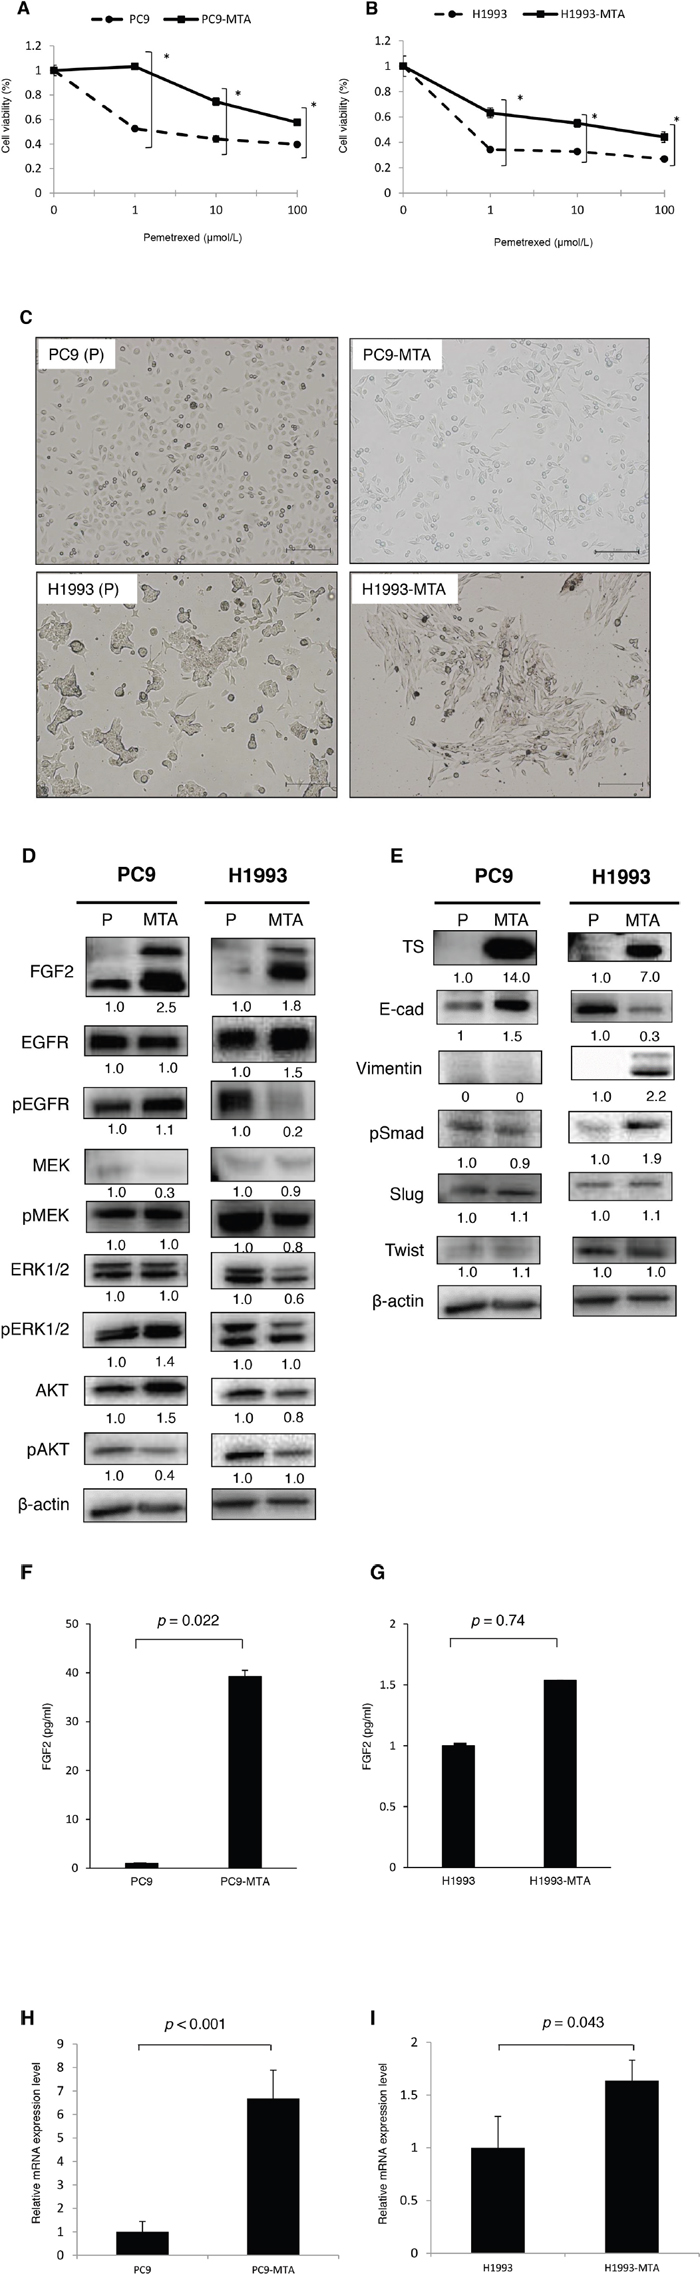 Characteristics of pemetrexed-resistant lung cancer sublines and their parental cells.